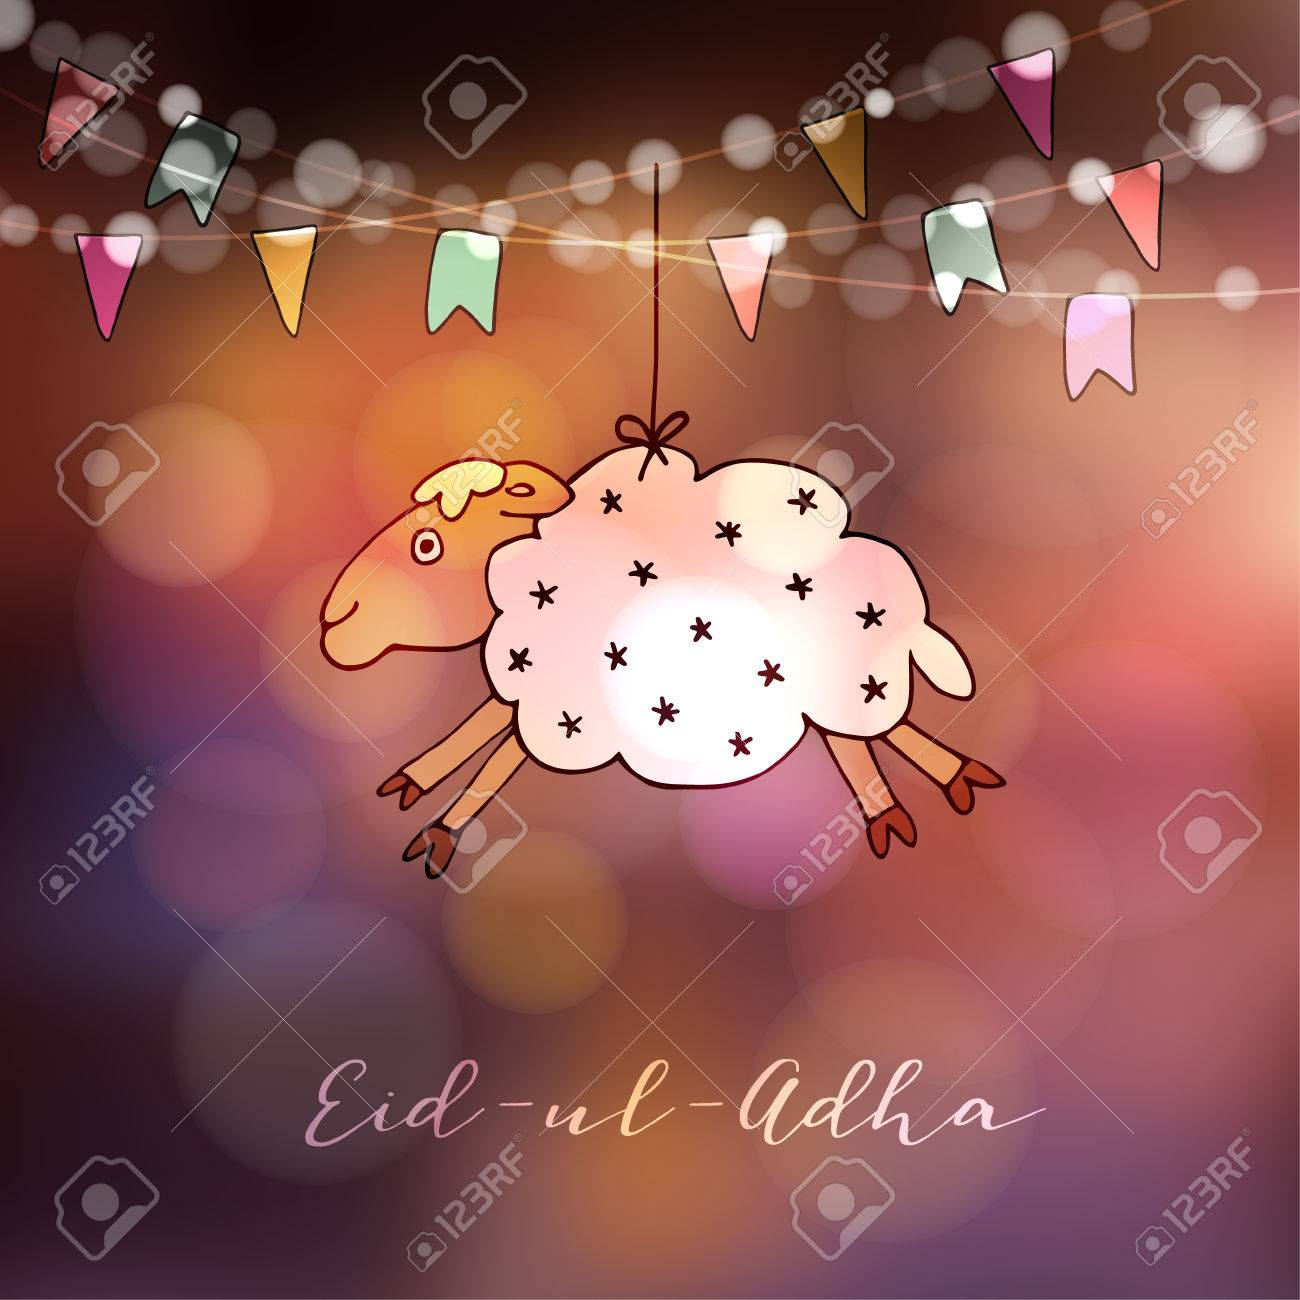 Eid Ul Adha Greeting Card With Hand Drawn Sheep And Party Flags